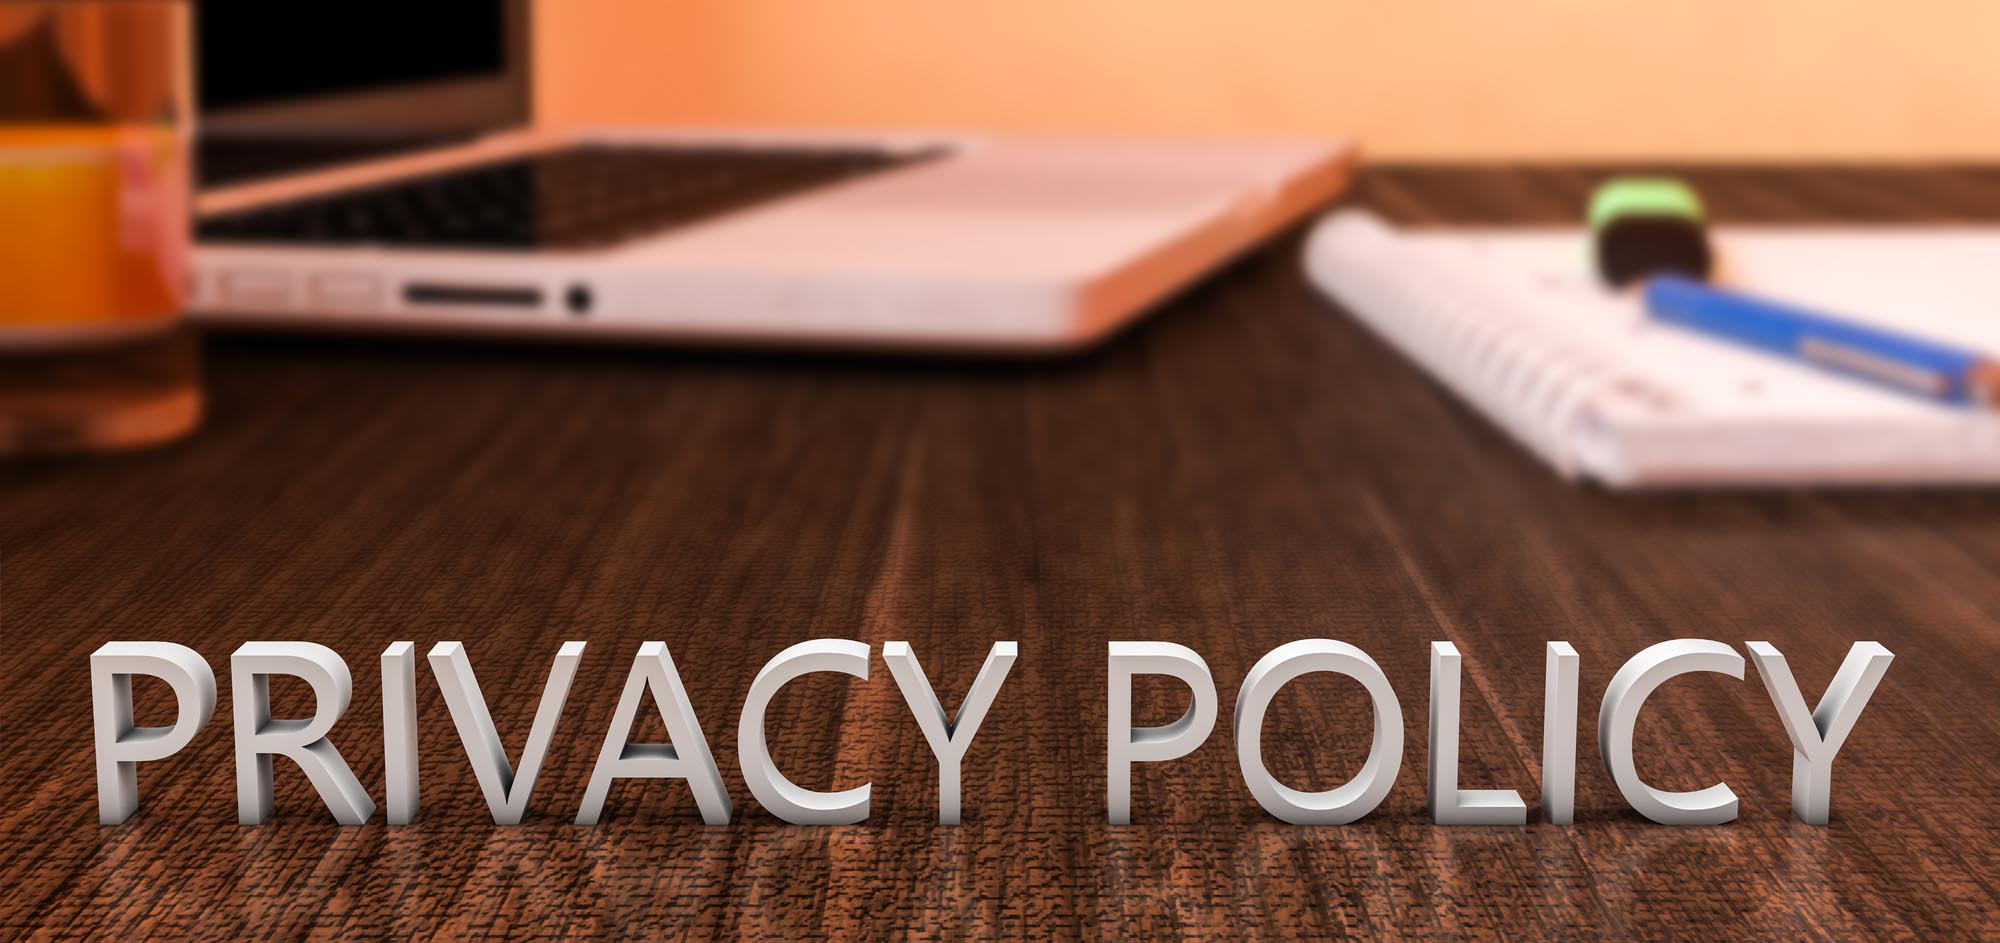 Secure Privacy Policy